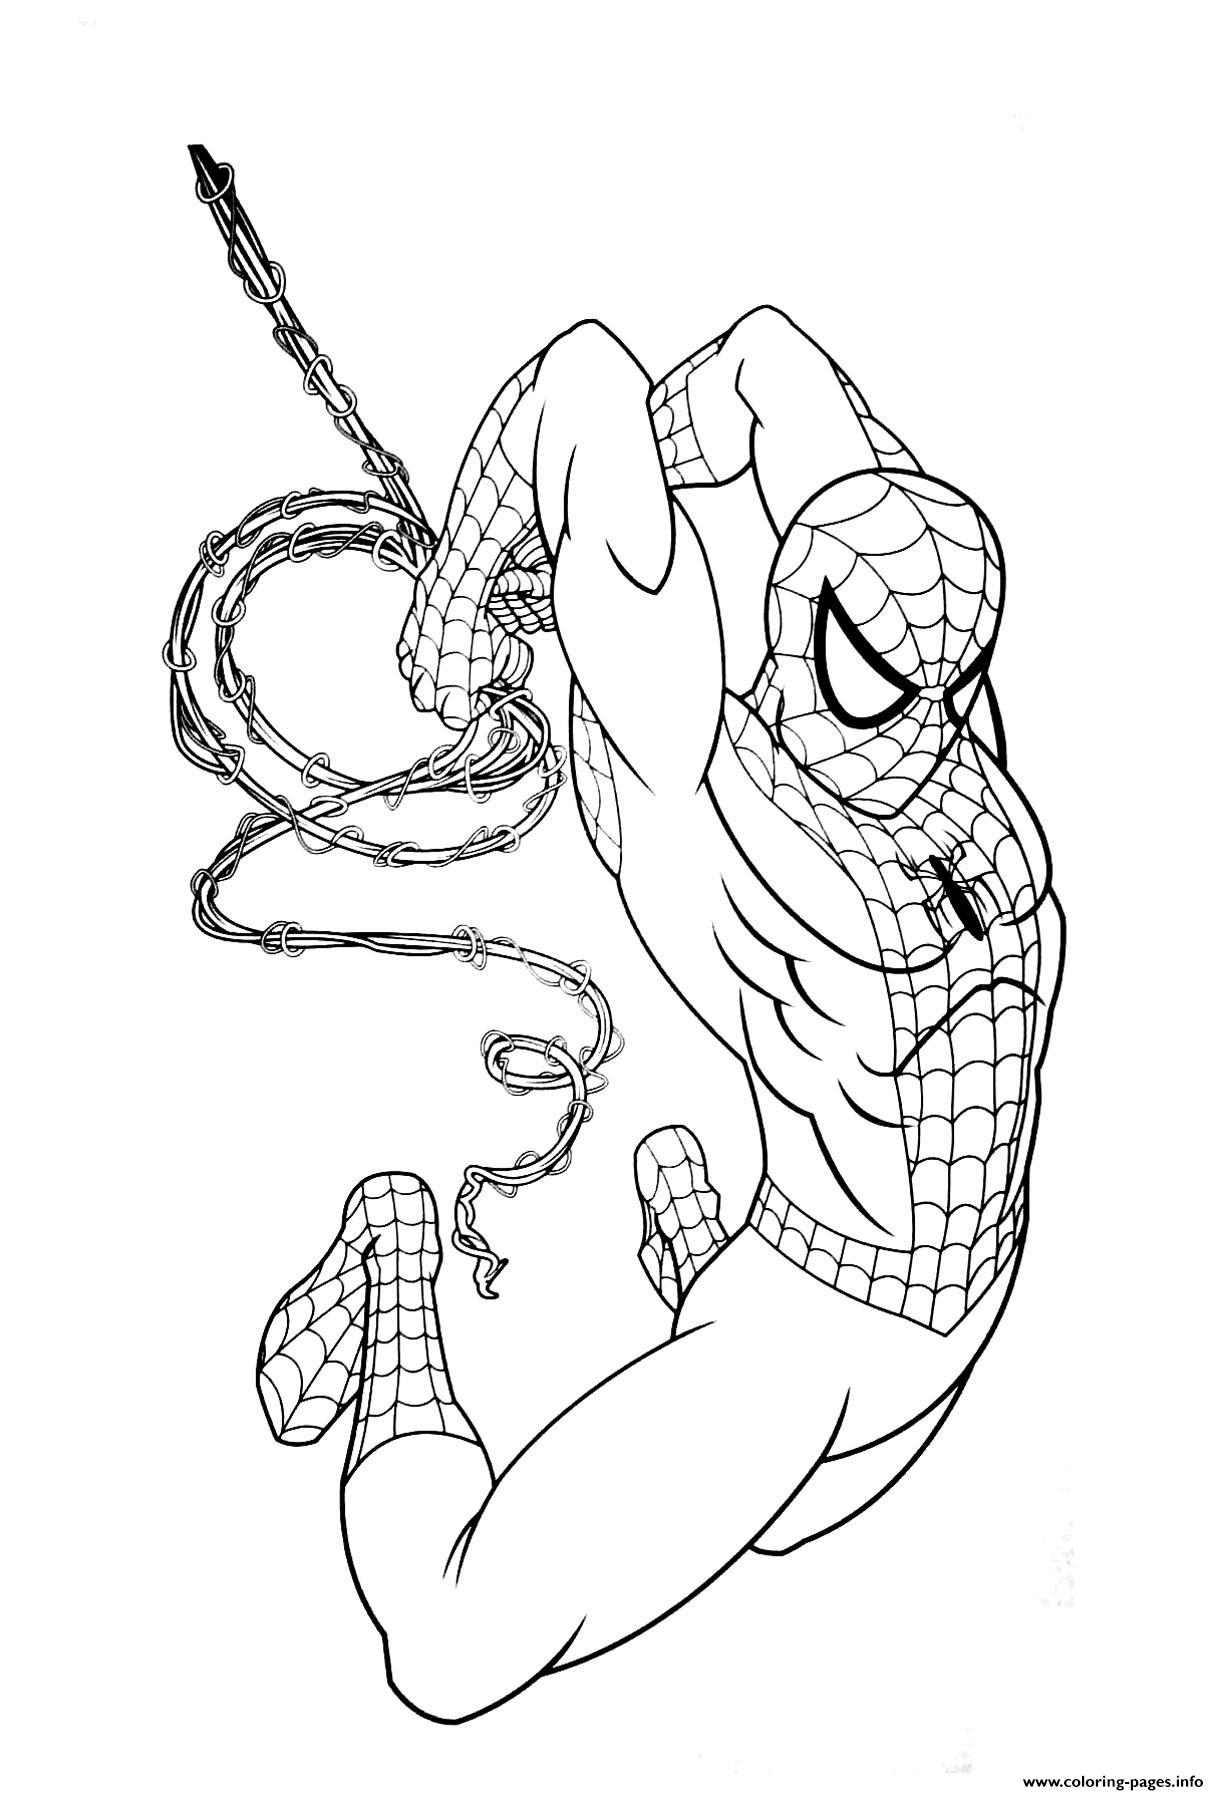 Spiderman Coloring Pages Avengers